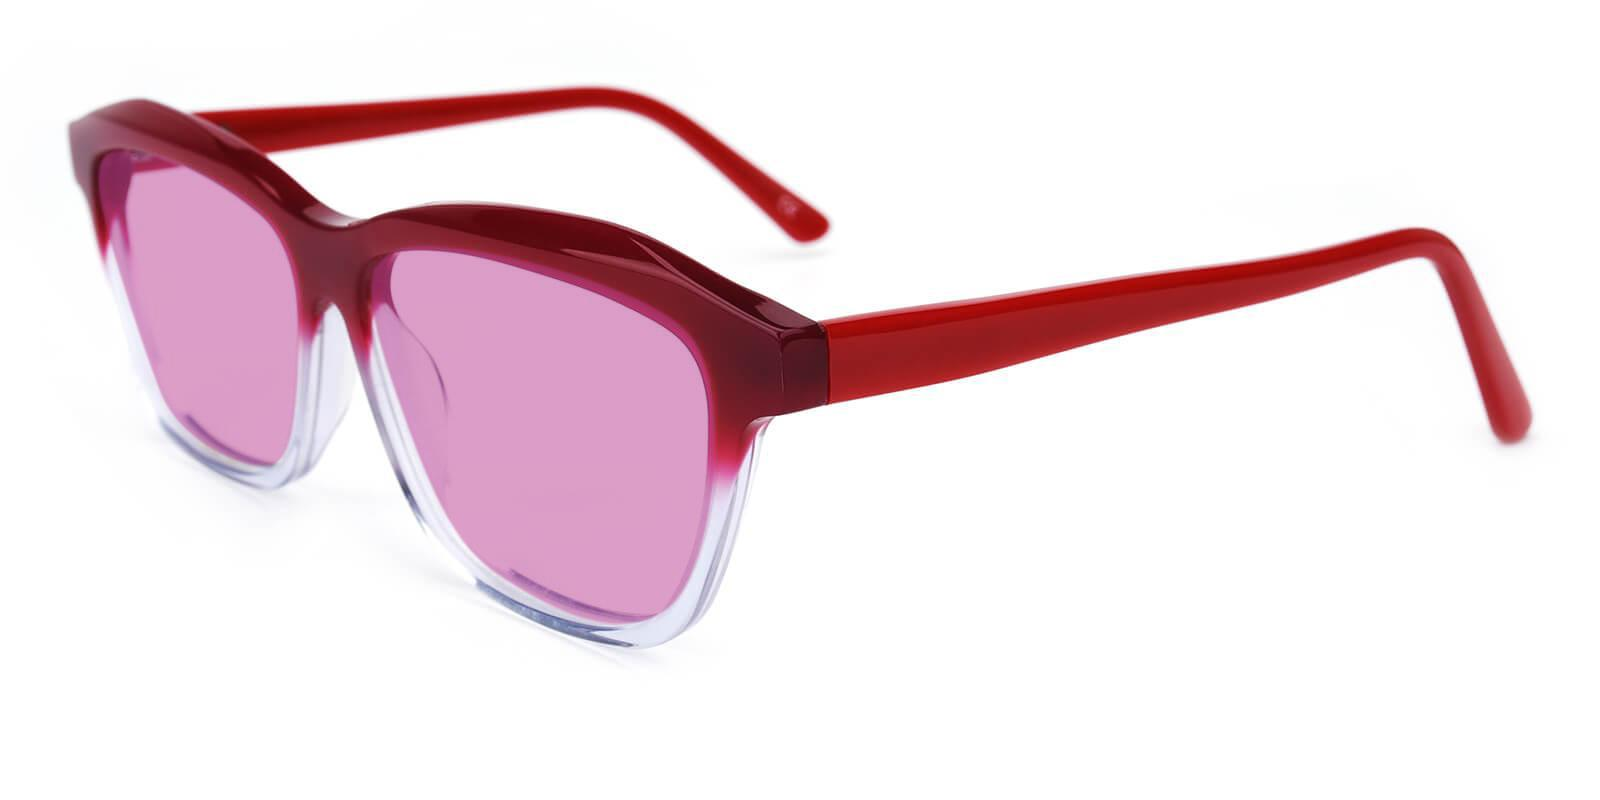 Morning Red Acetate SpringHinges , Sunglasses , UniversalBridgeFit Frames from ABBE Glasses